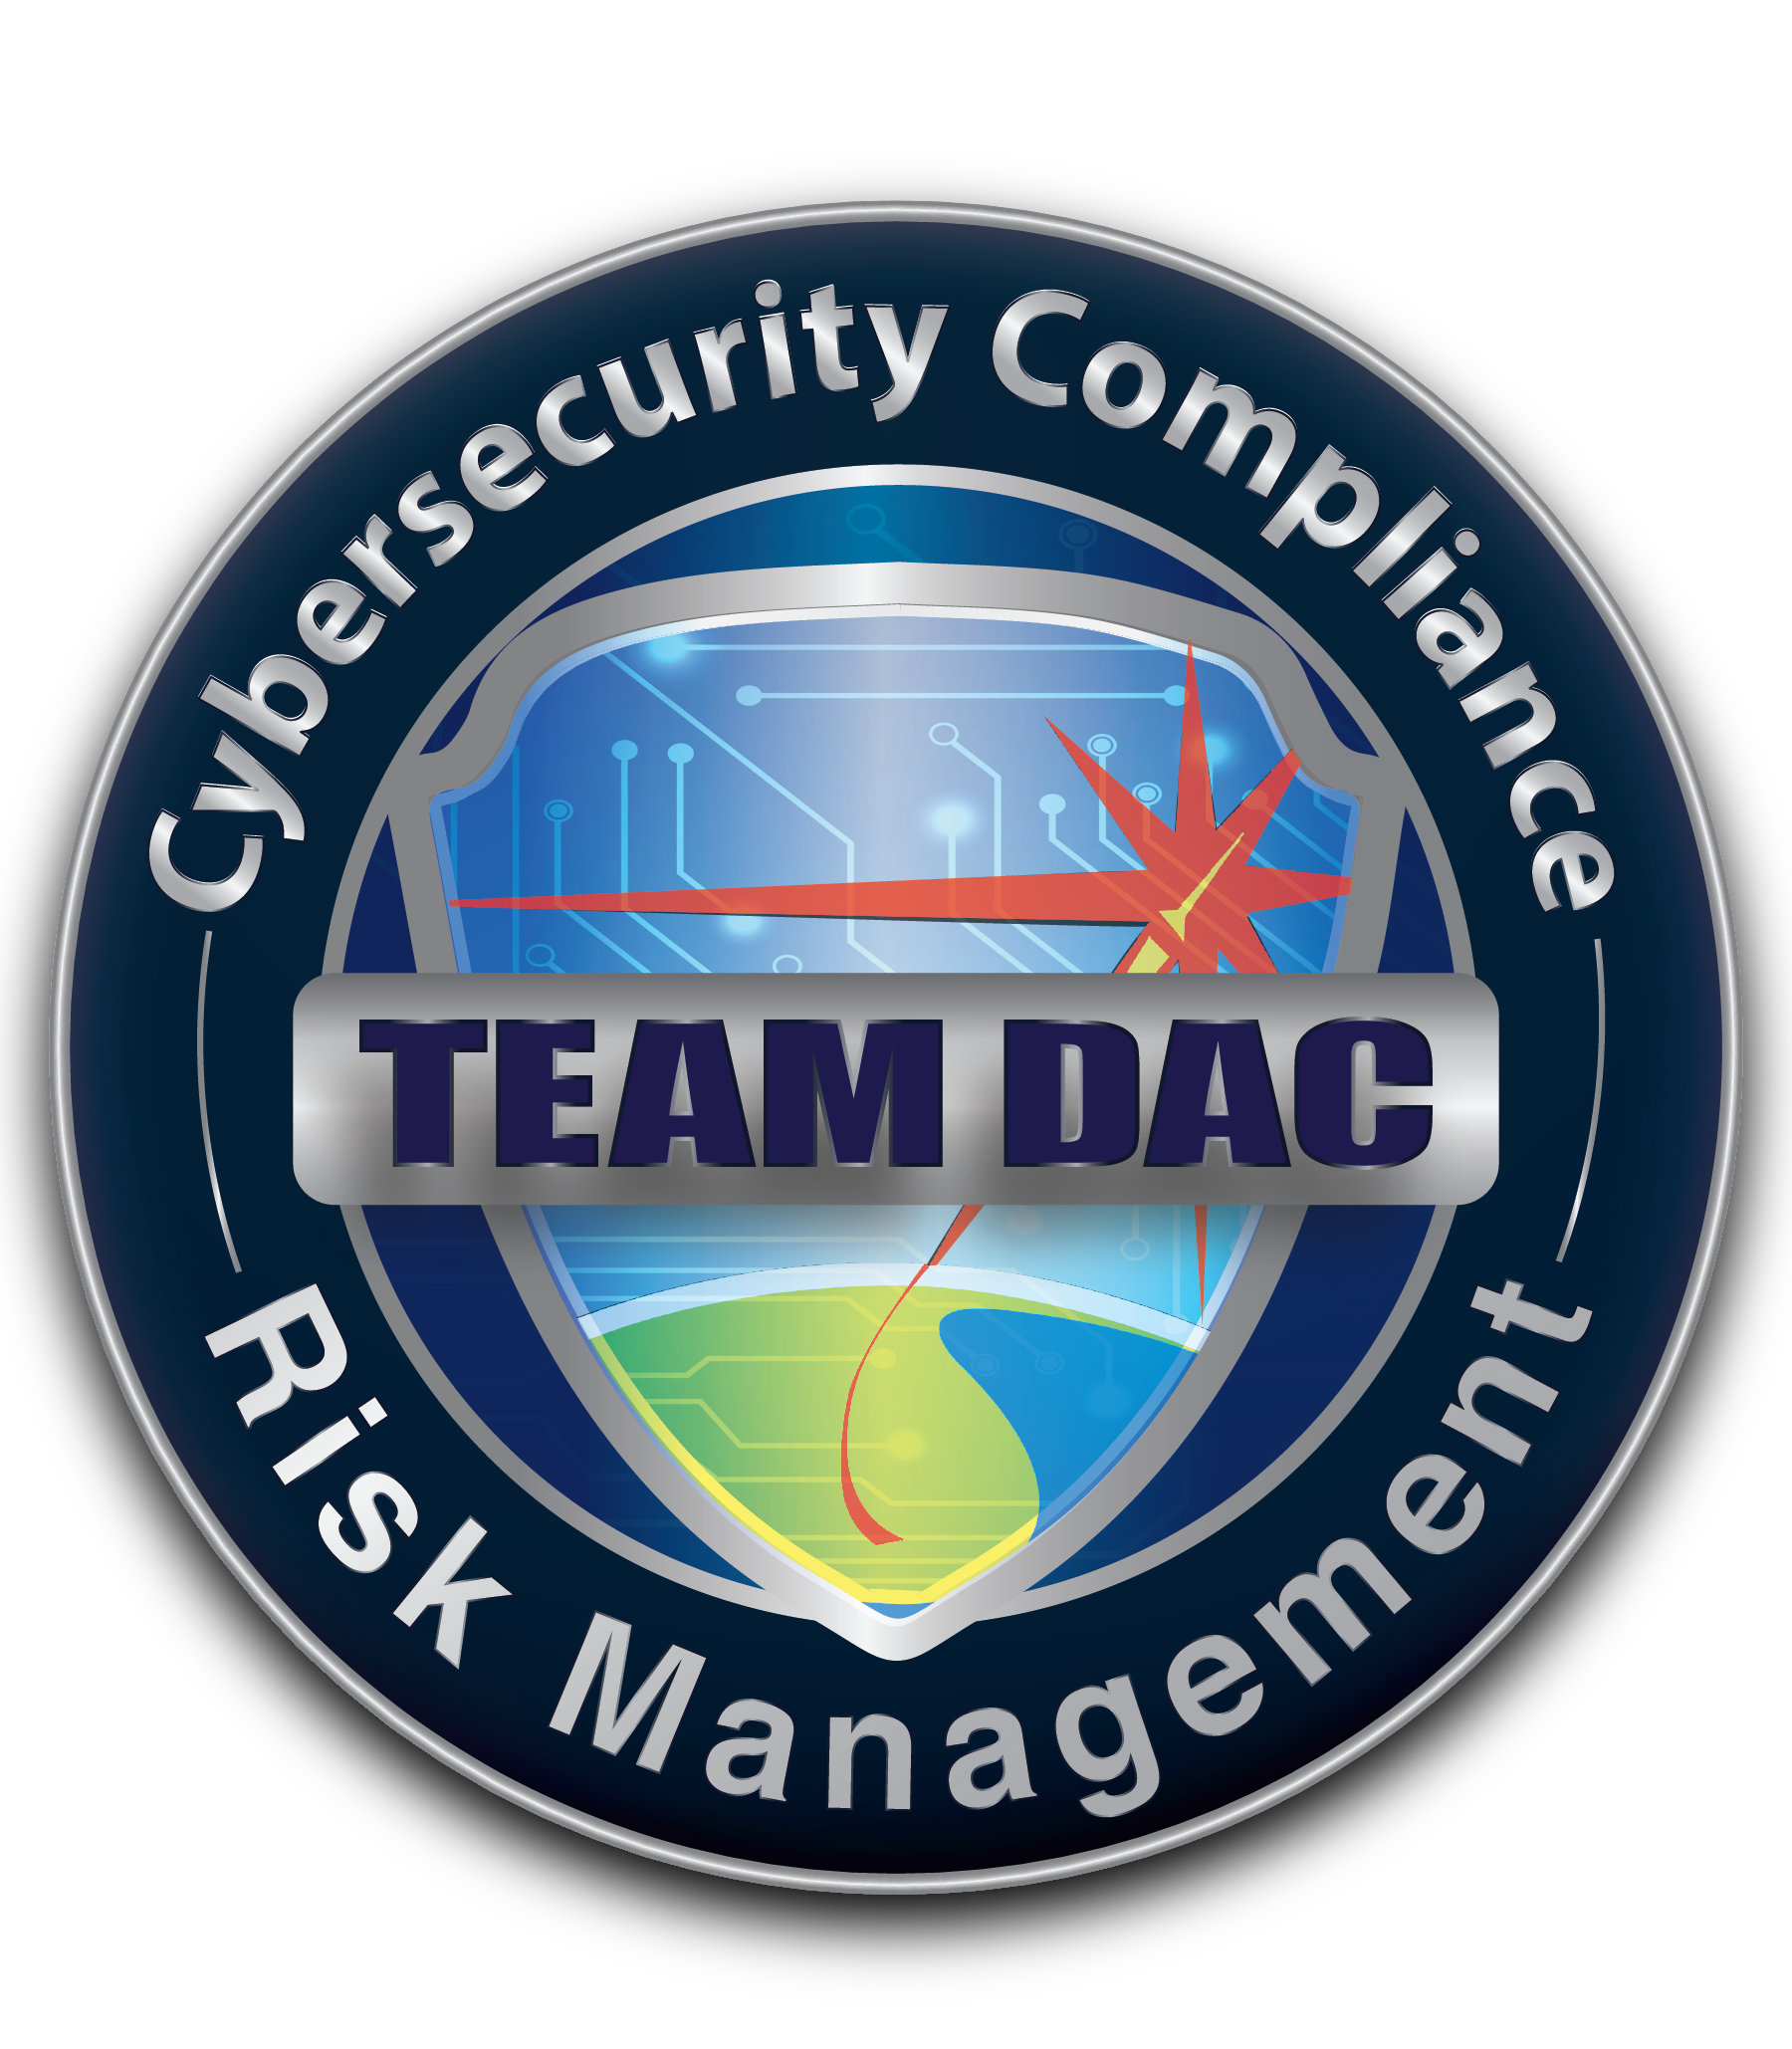 MDA has awarded DECISIVE ANALYTICS Corporation with a $59.4M competitive contract to provide Cybersecurity Compliance and Risk Management (CCRM) under the TEAMS acquisitions.